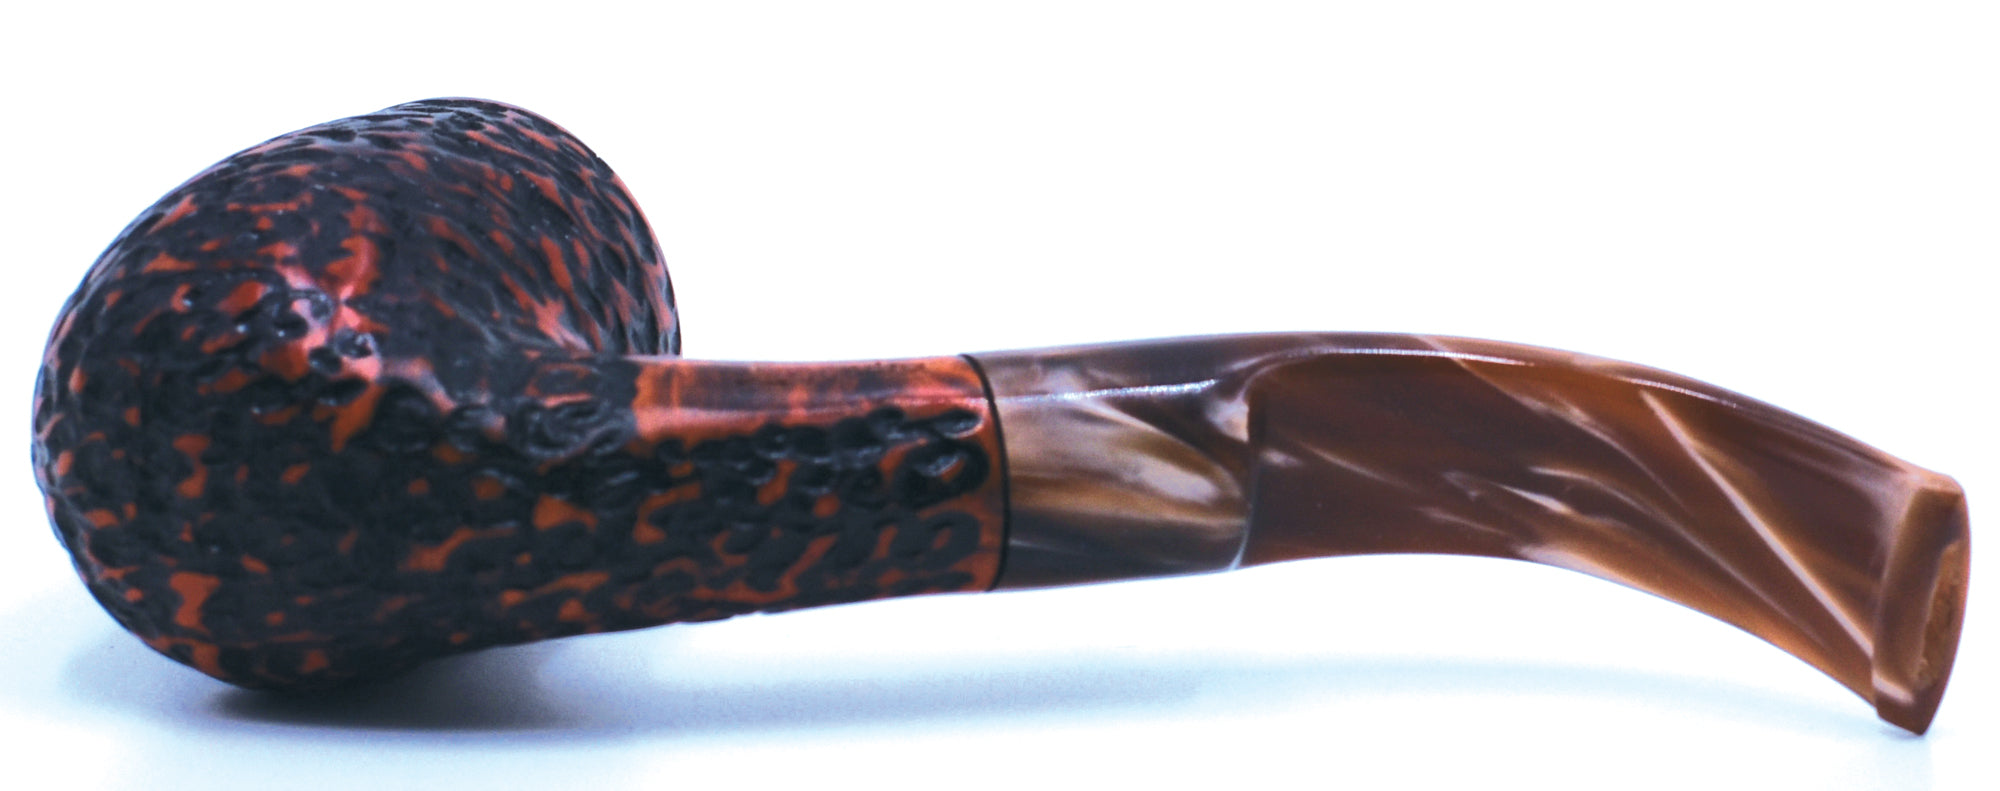 LEGENDEX® LASCALA* Plexiglass Mouthpiece 9 MM Filtered Briar Smoking Pipe Made In Italy 01-08-705